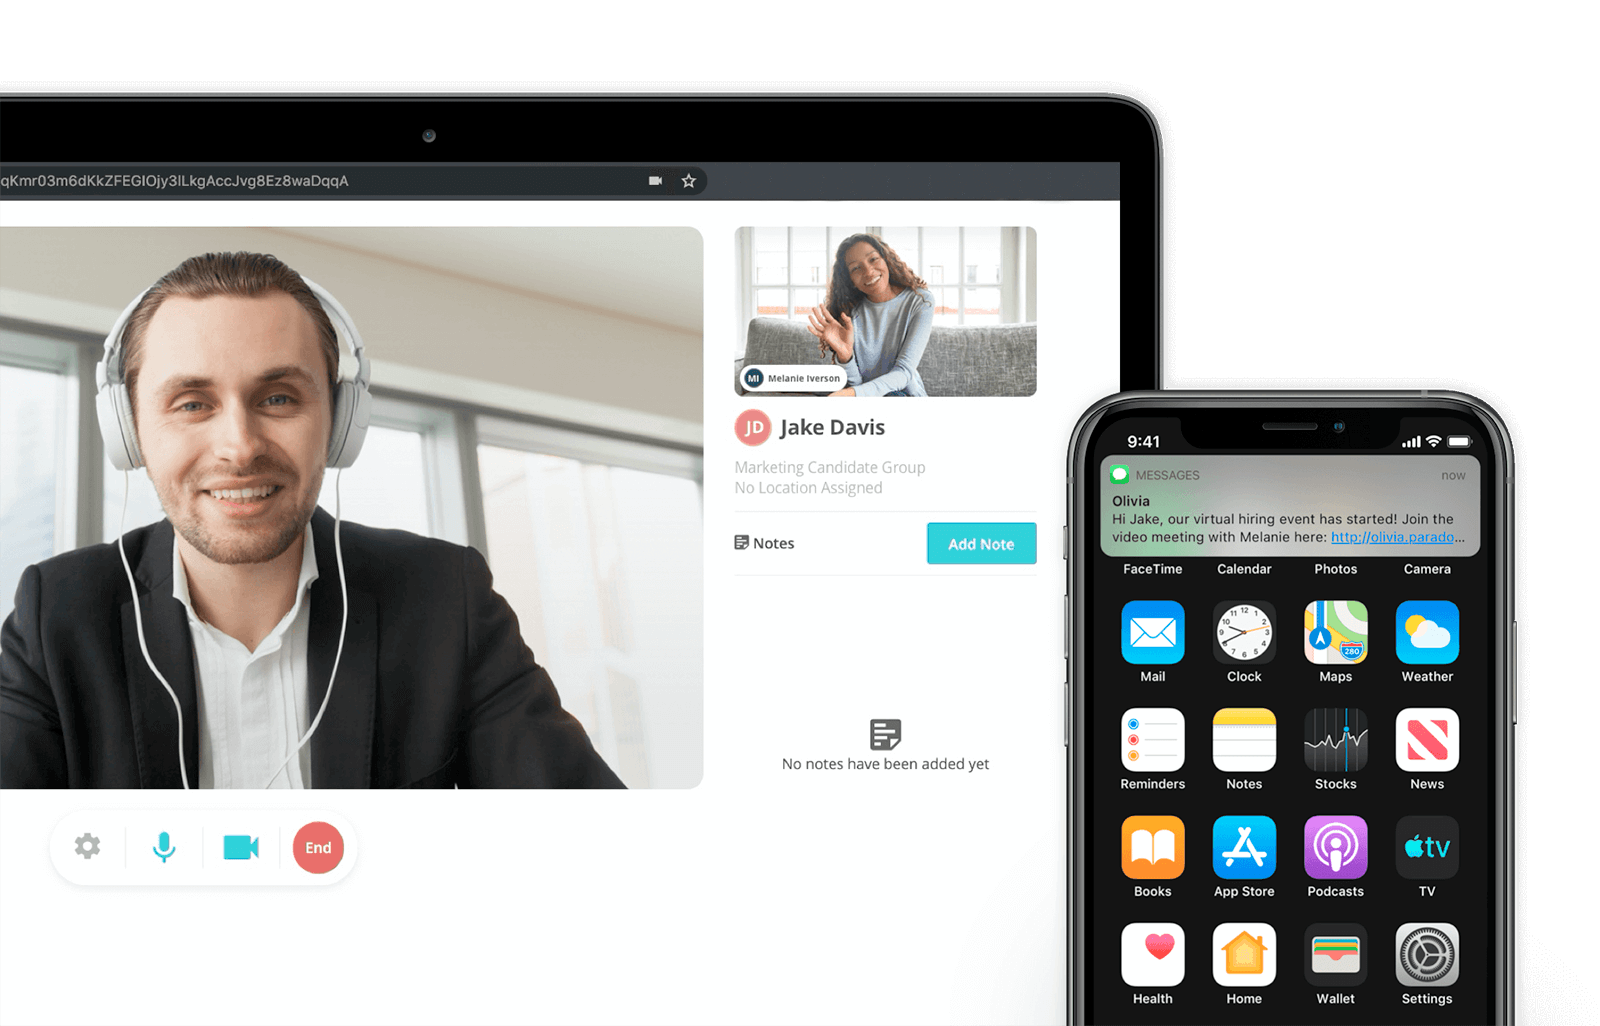 virtual hiring events with video chat feature